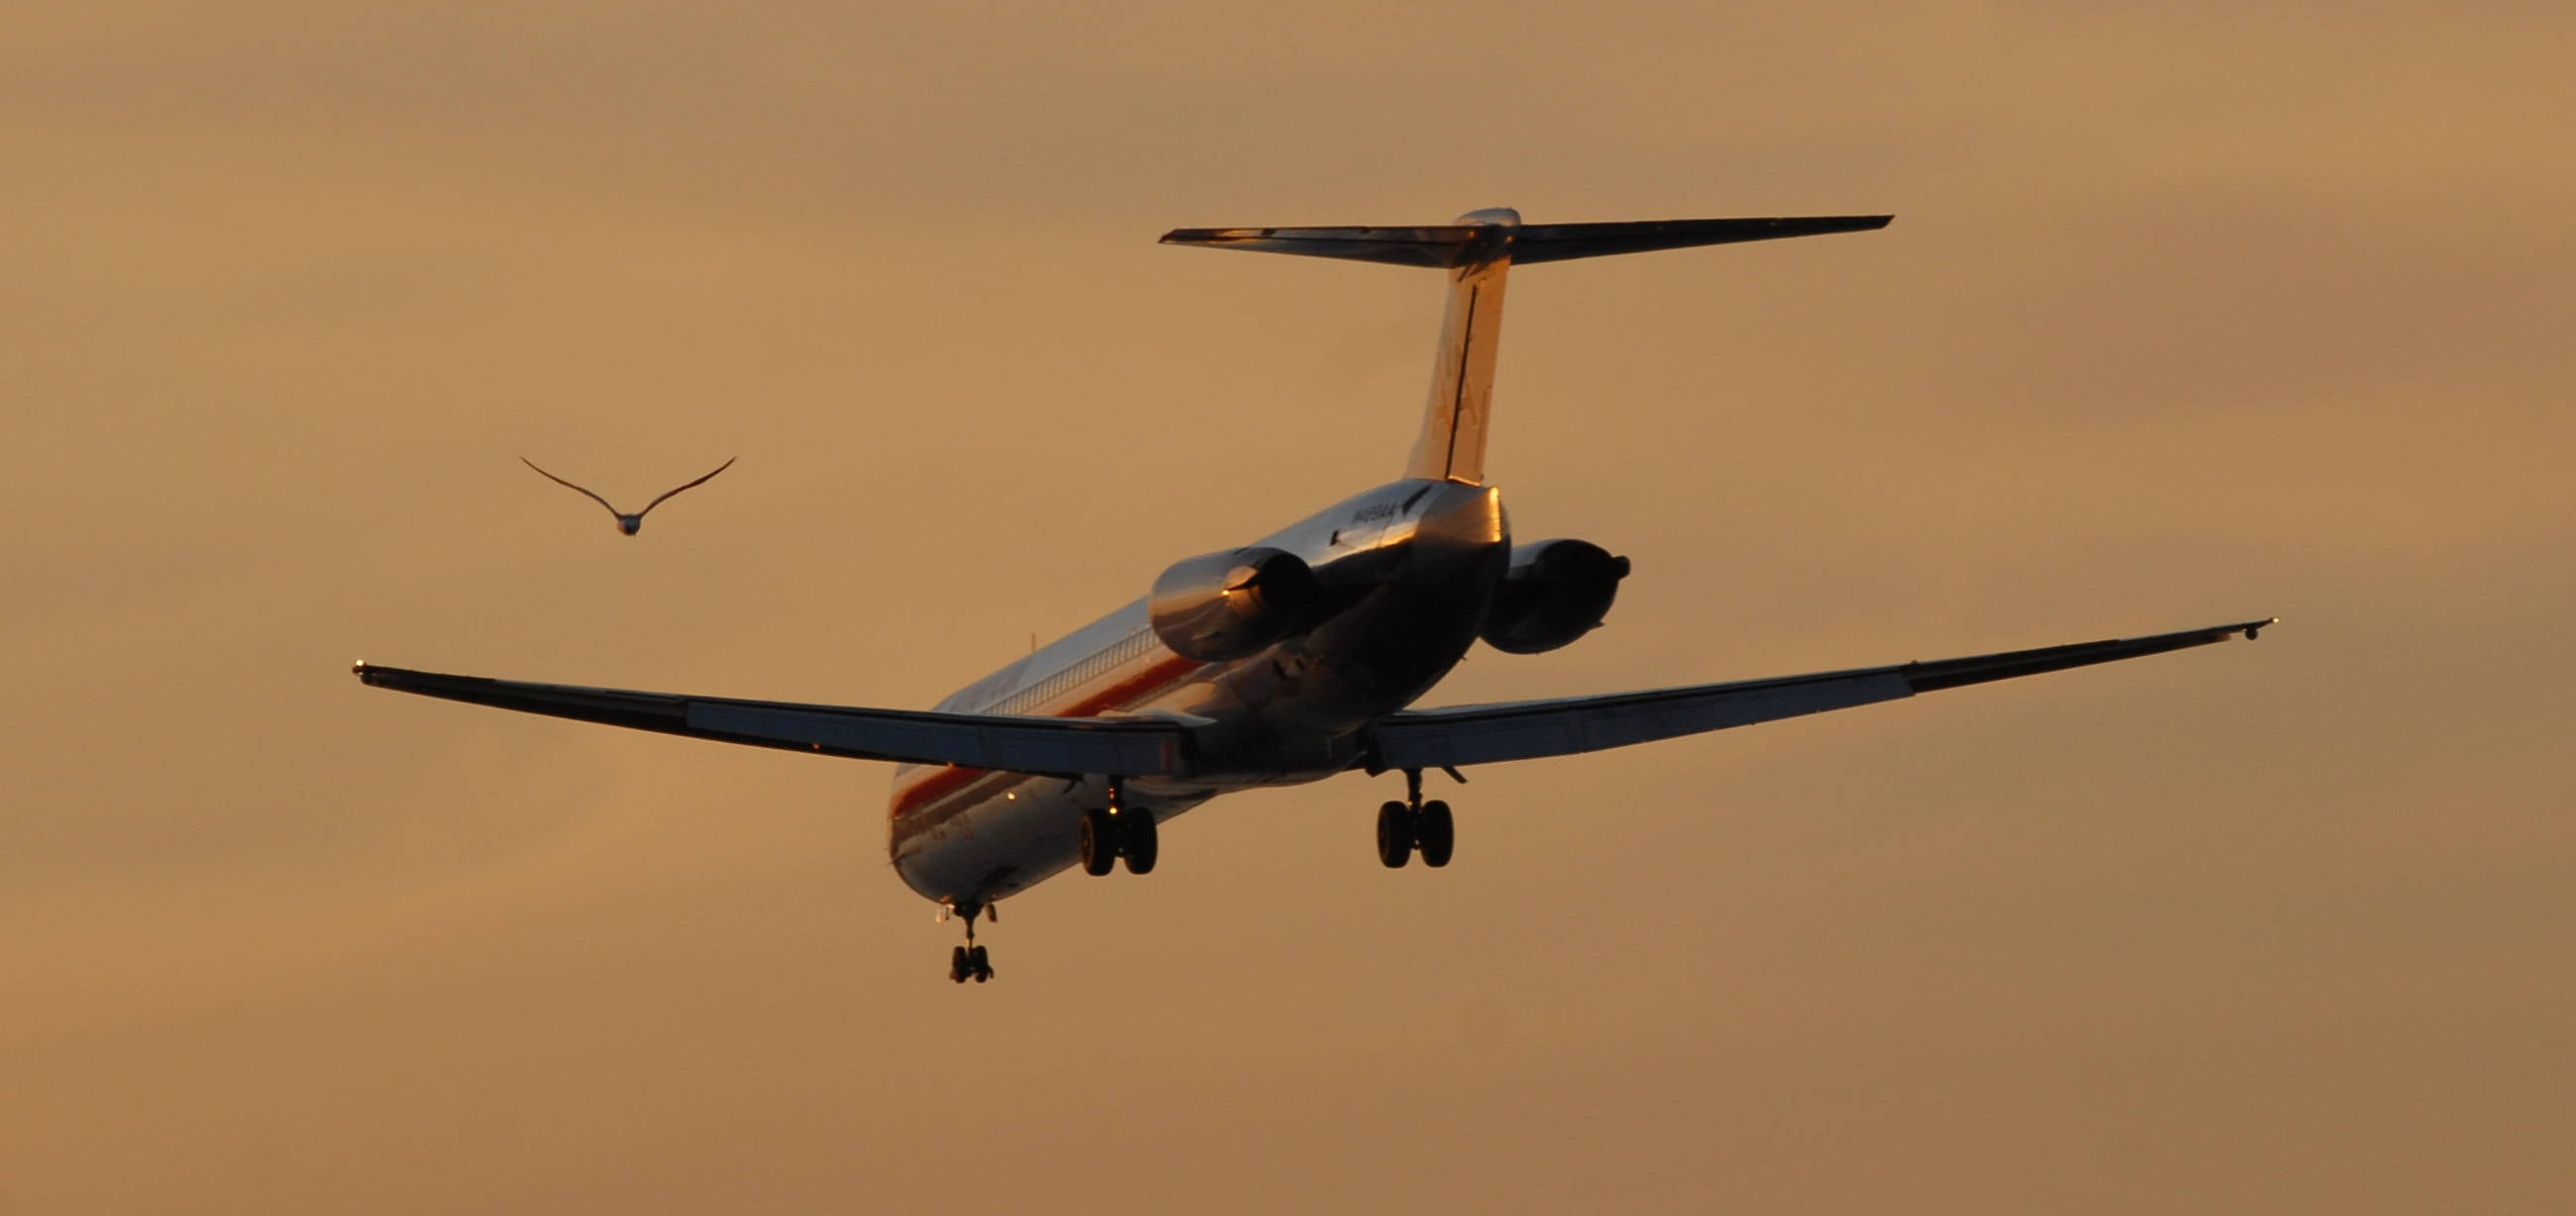 Pretty, Shiny and Loud: Why Aviation Lovers Will Miss the MD-80